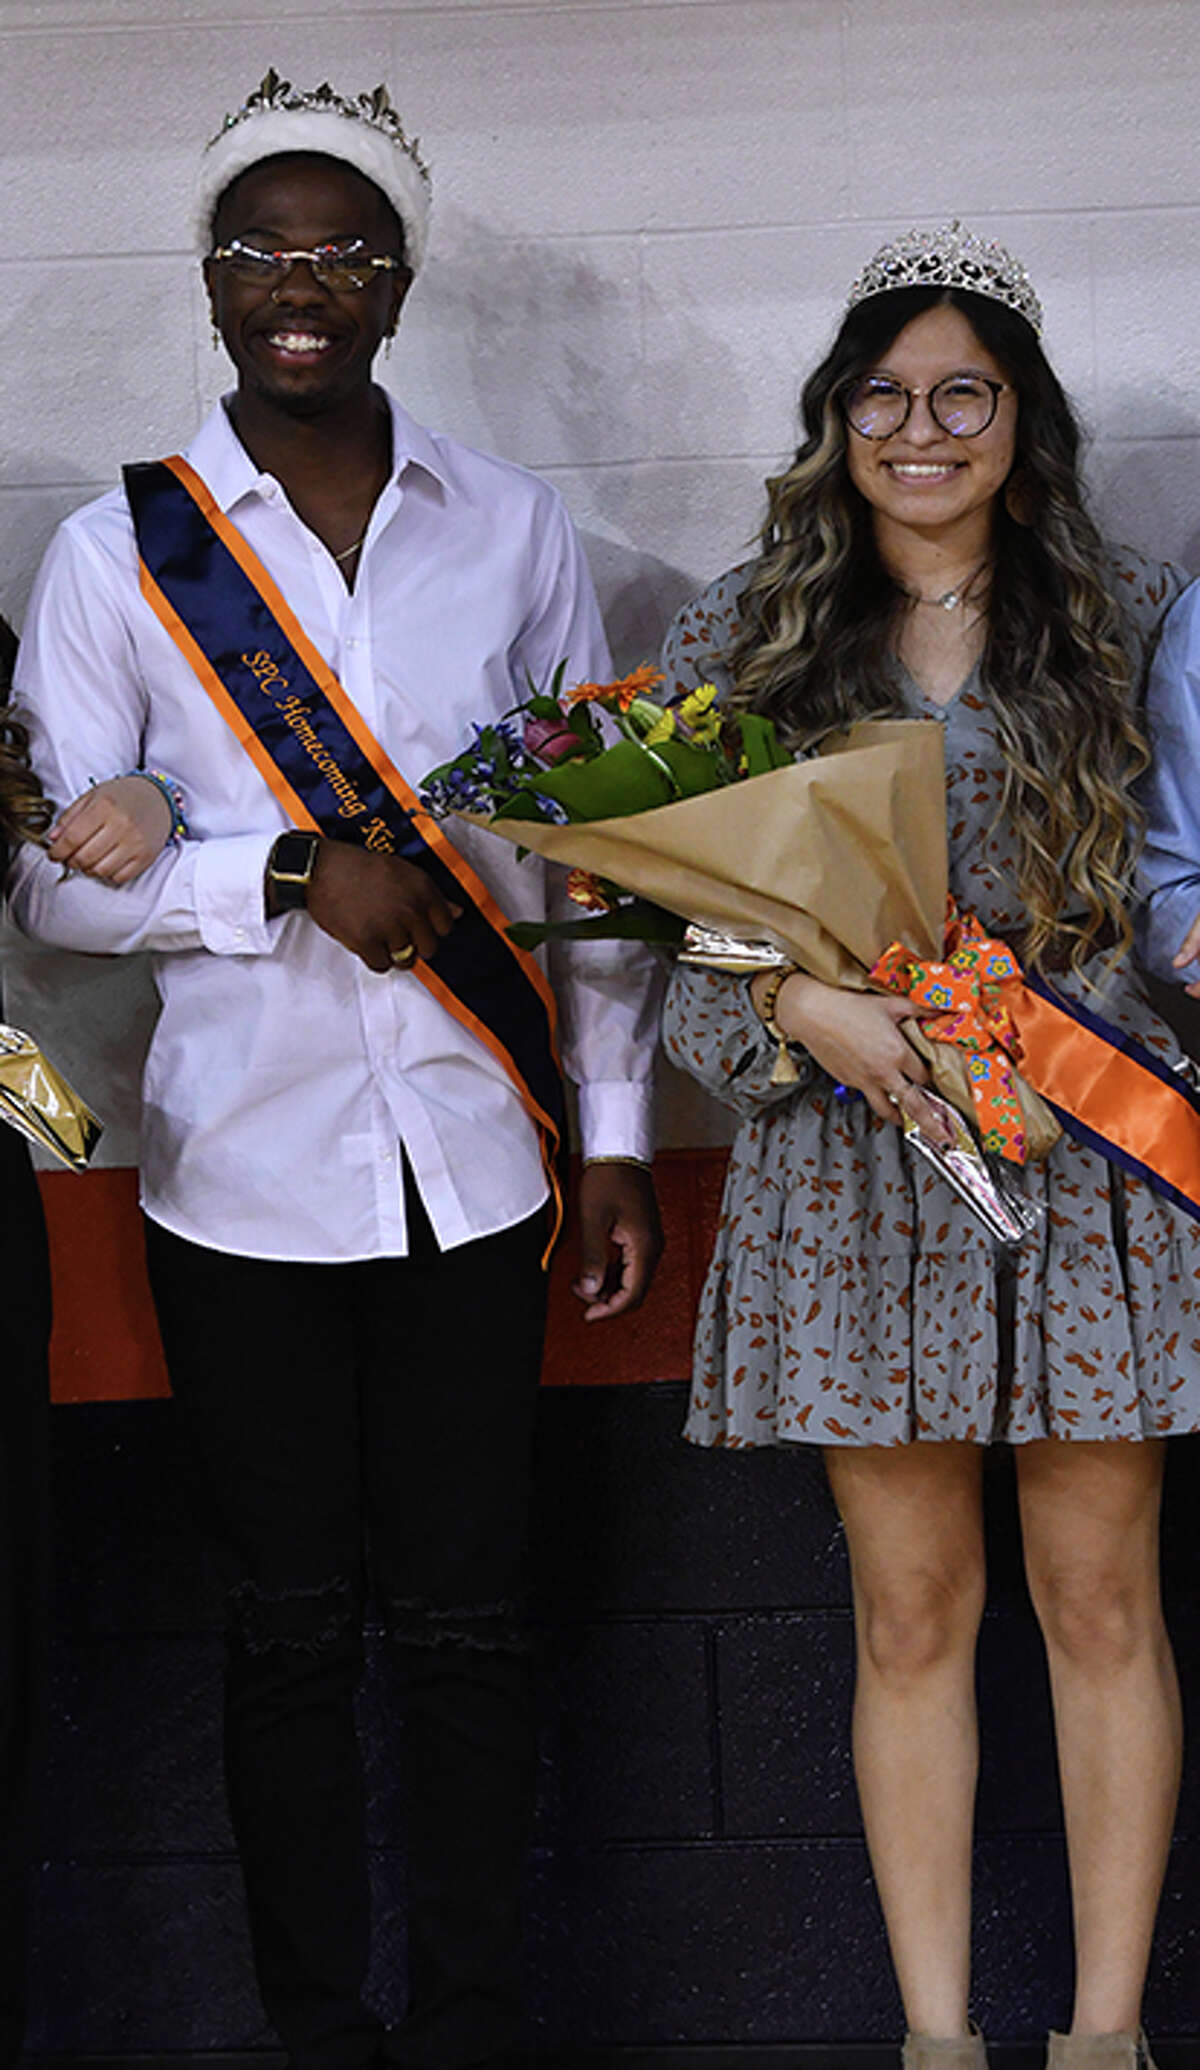 HOMECOMING HONORS - Students at South Plains College selected Demarcus Sneed of Lakeland, Fla., and Kamryn Alvarez of Earth as Homecoming King and Queen during halftime of the Texans/Western Texas College basketball game on Thursday (March 11) in the Texan Dome. Sneed, a business major, represented the Sixth Man. Alvarez, a video and cinema major, represented Catholic Family Ministry. The contest was open to all student organizations, clubs and residence halls. (SPC Photo/Wes Underwood)